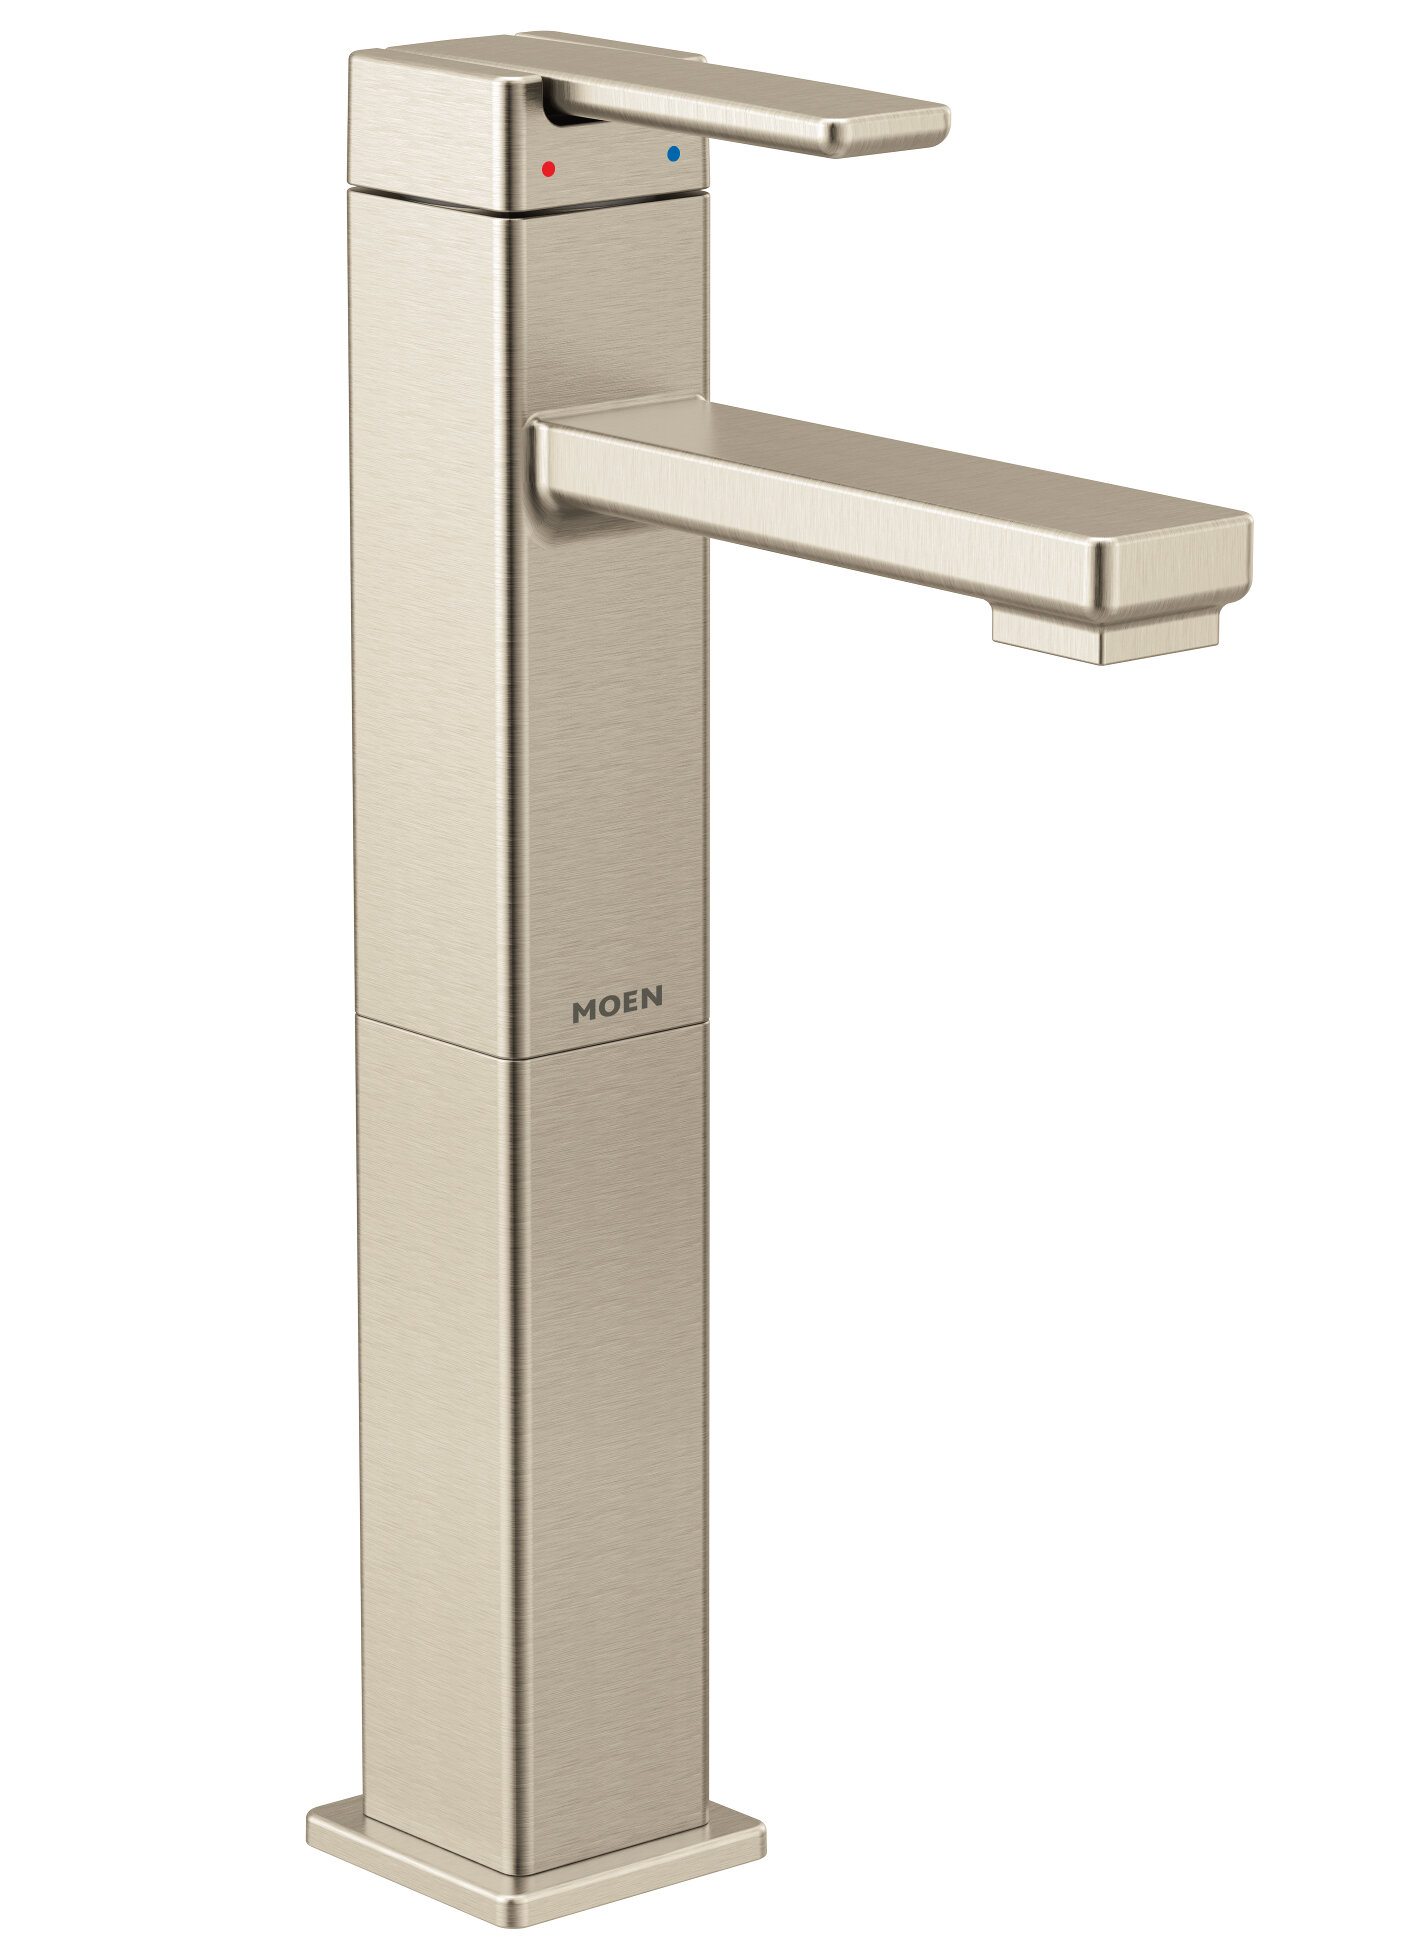 90 Degree Vessel Sink Bathroom Faucet with Drain Assembly